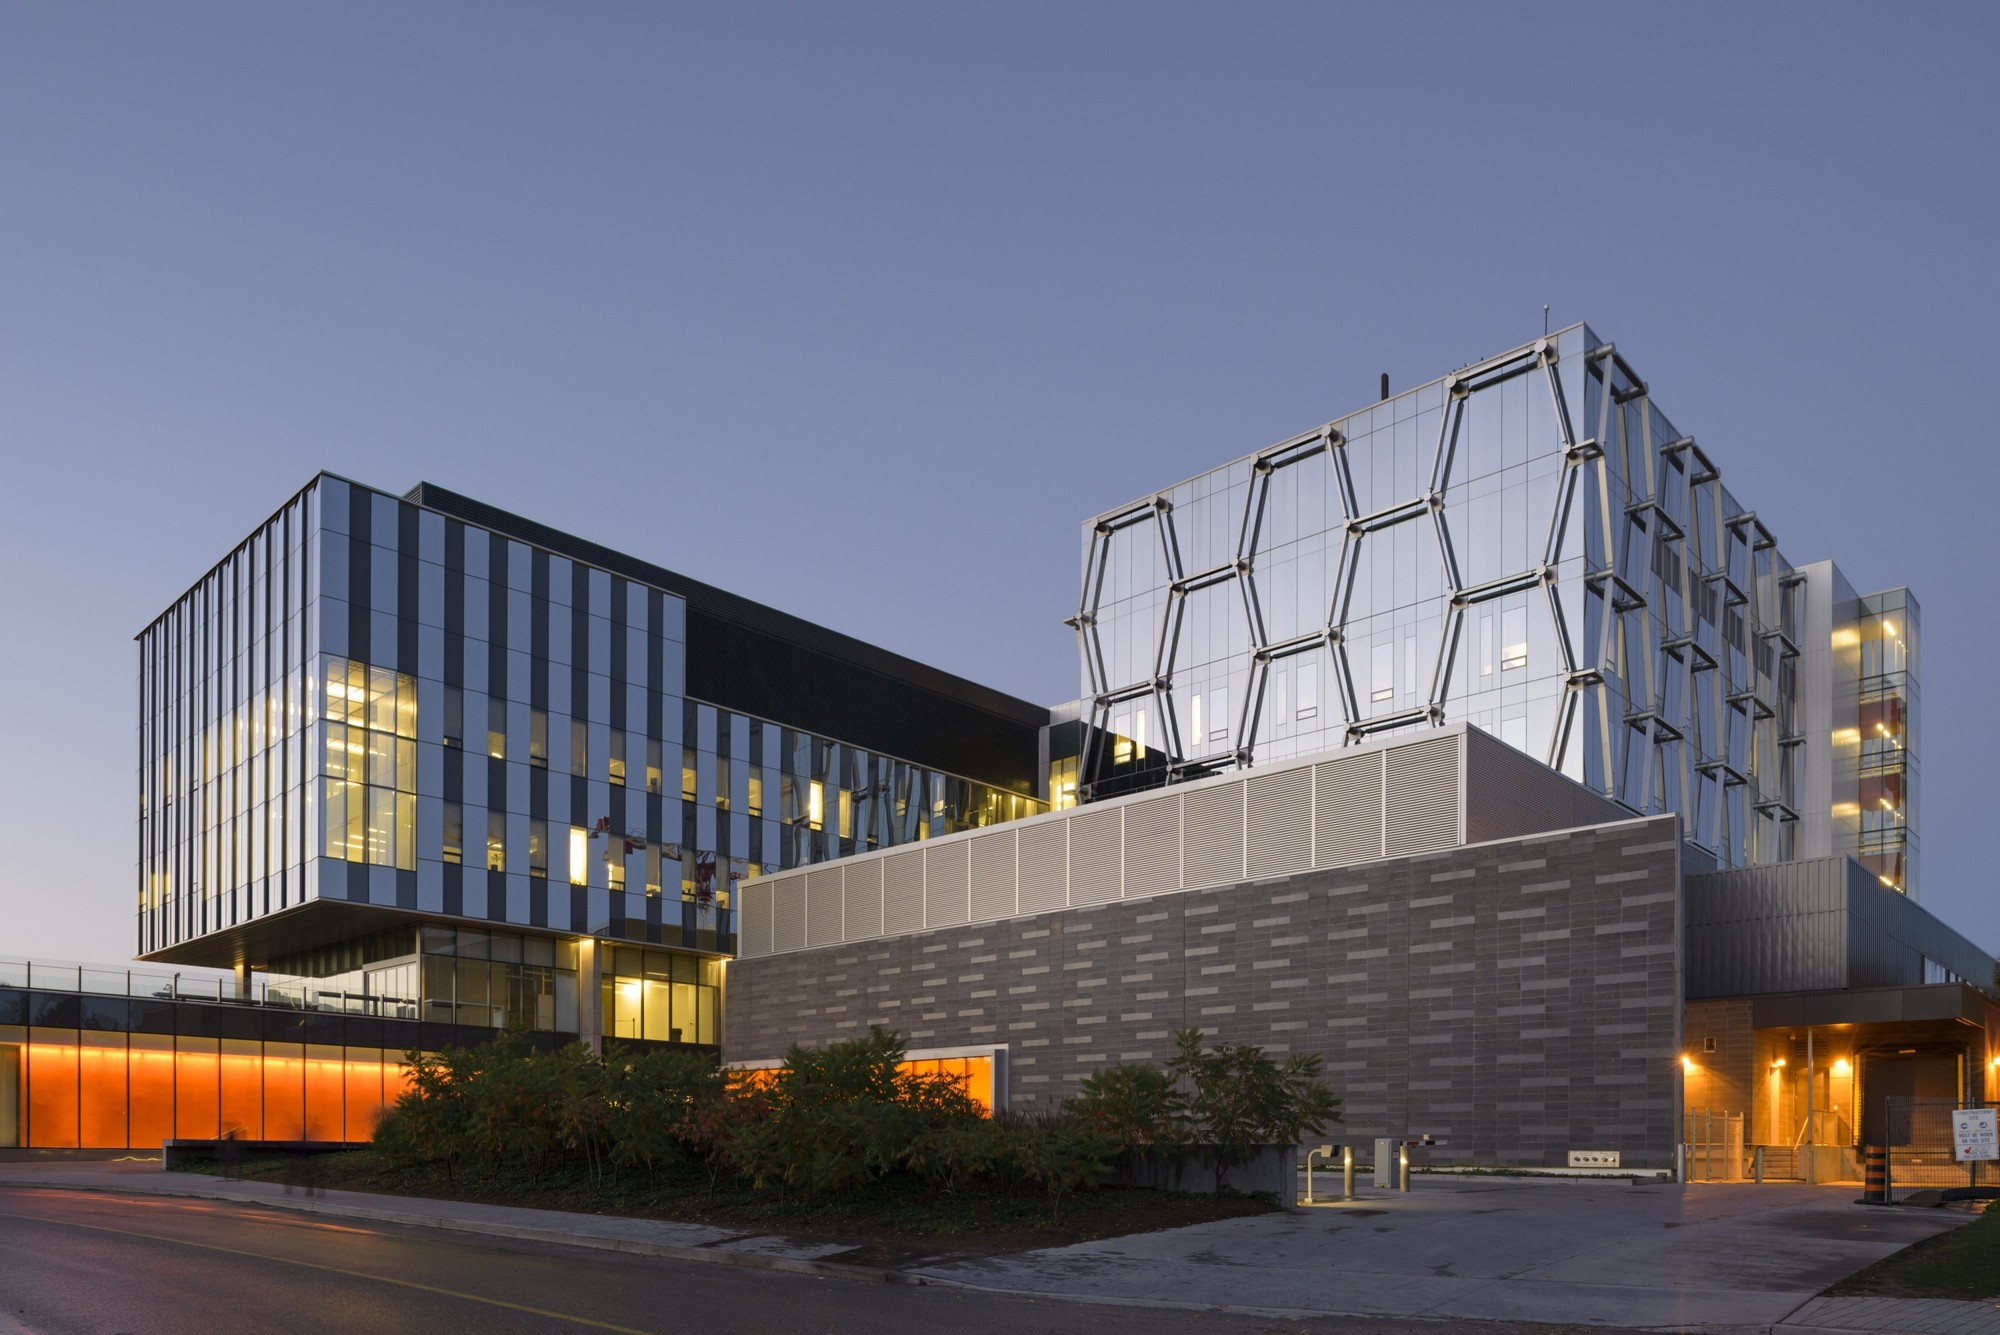 ... west university of waterloo waterloo on n2l 3g1 canada architect in